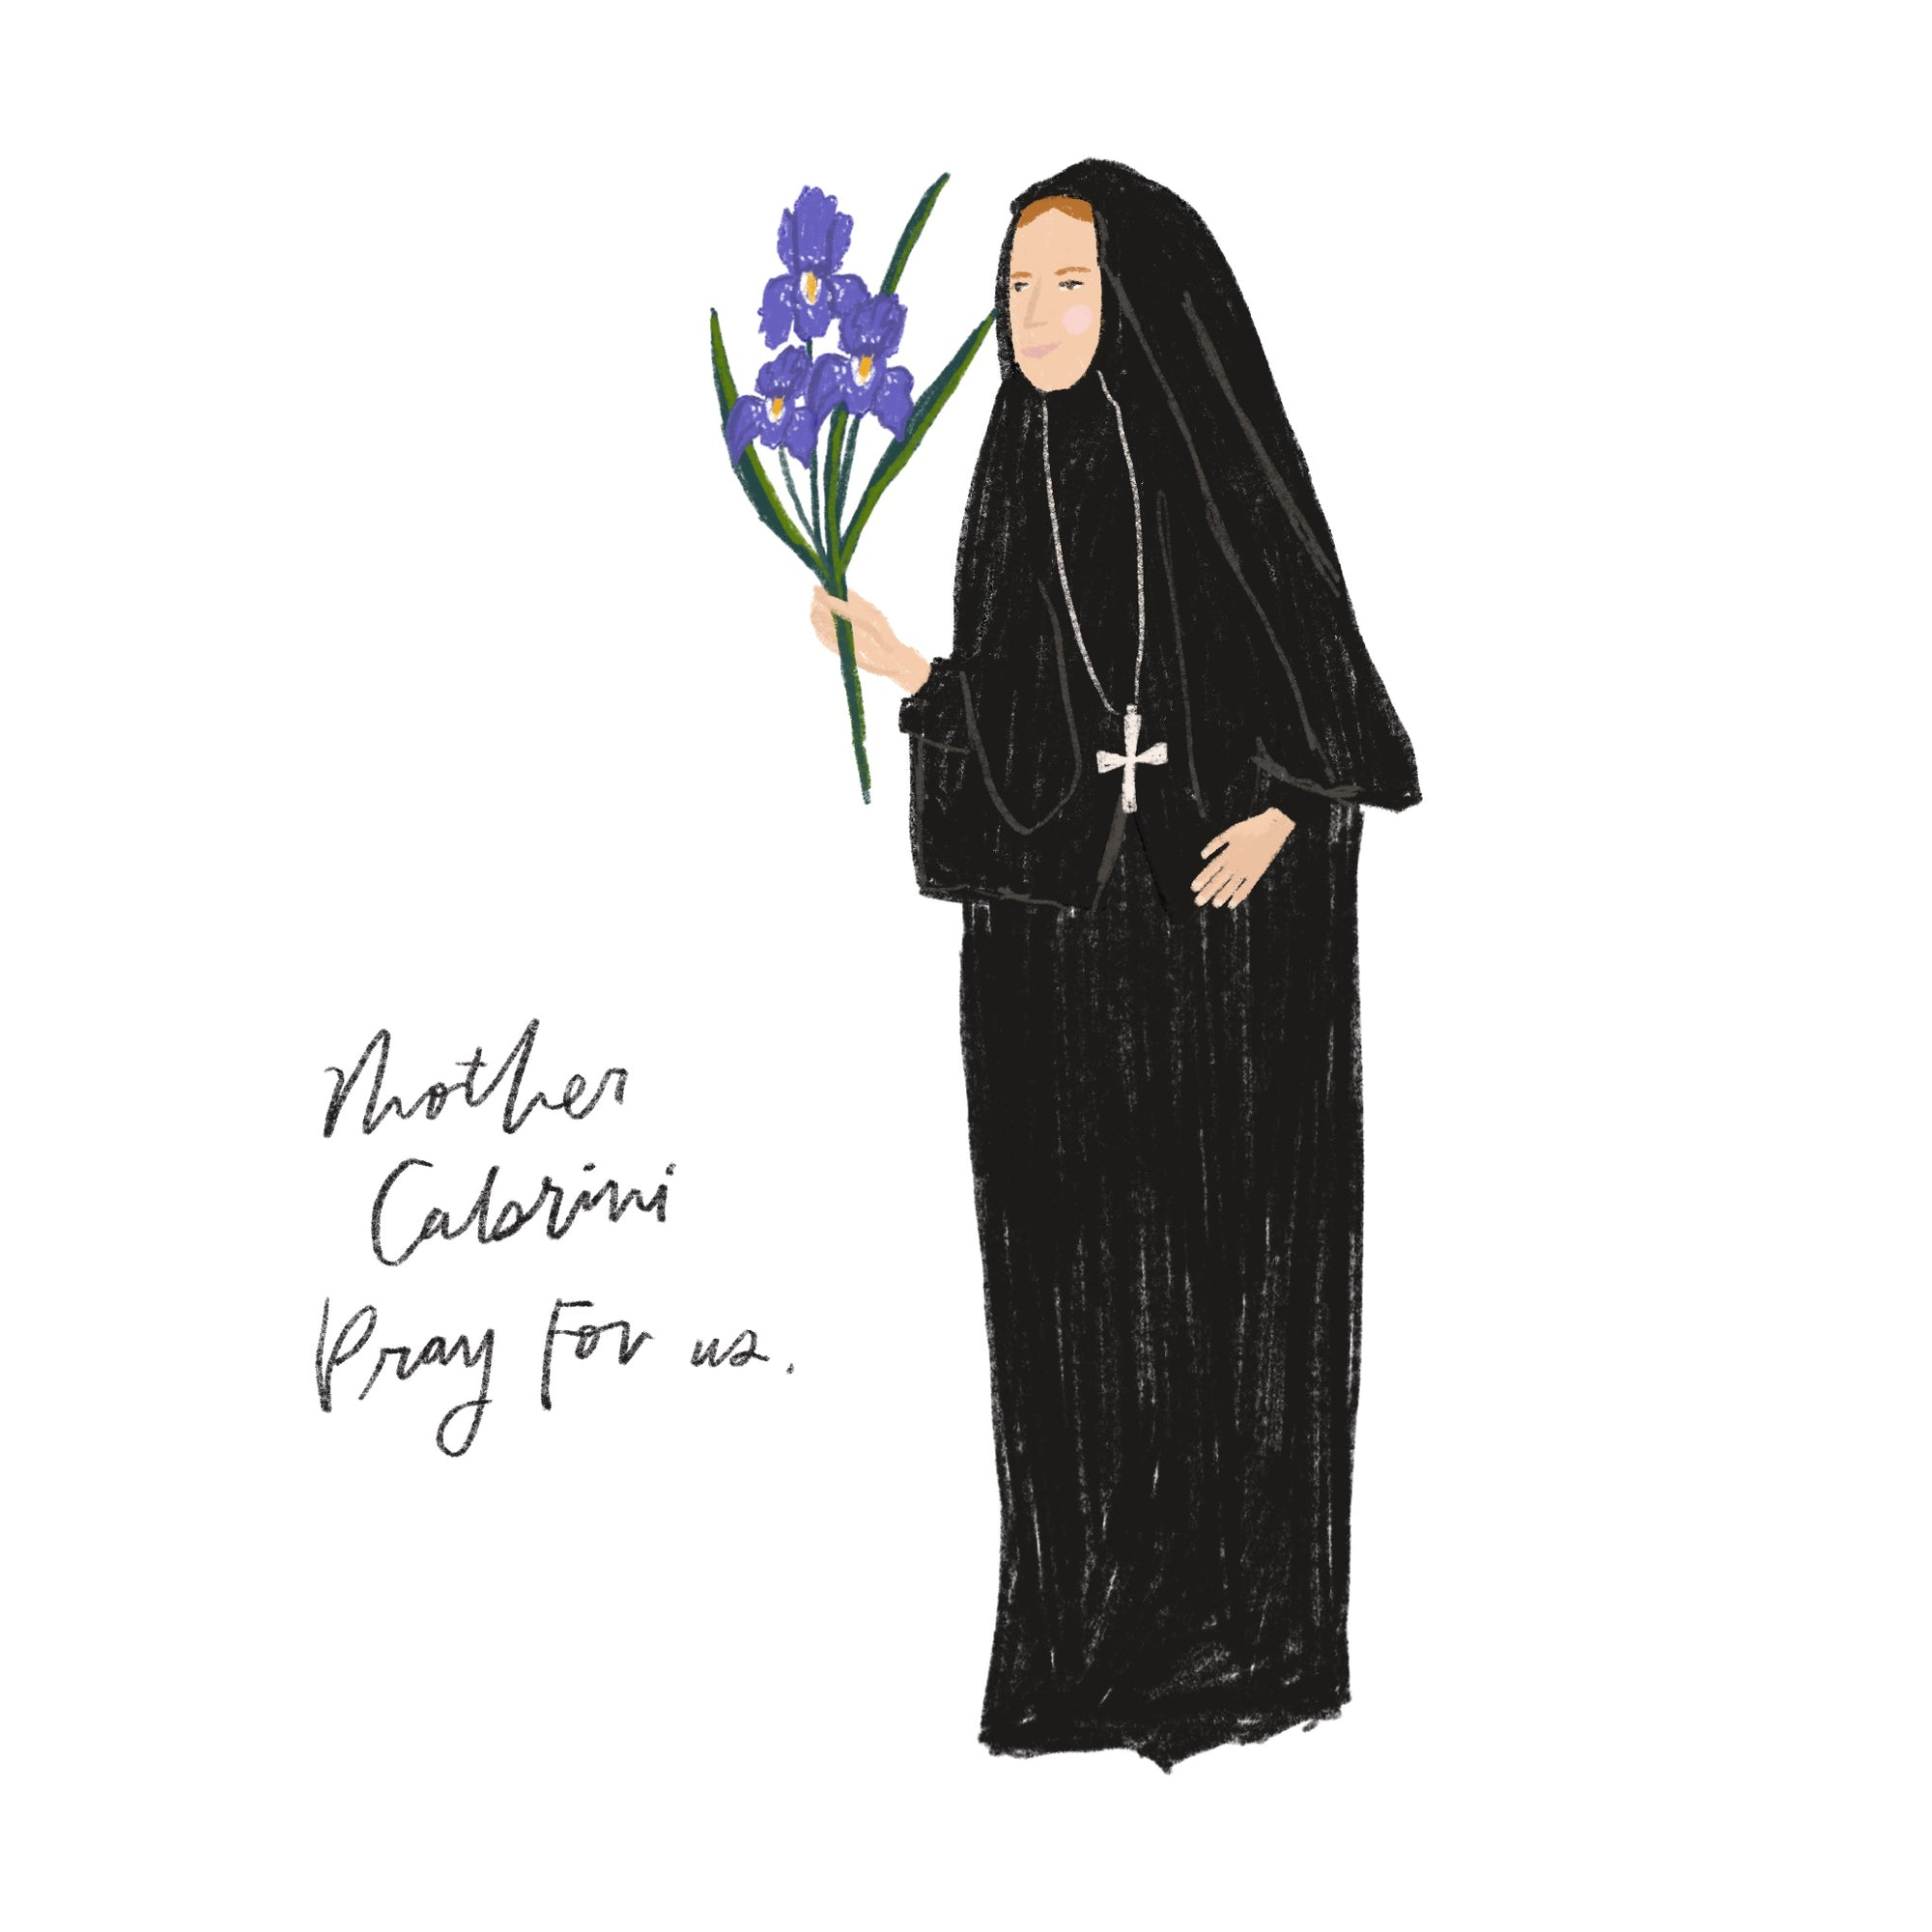 Mother Cabrini + the Irises